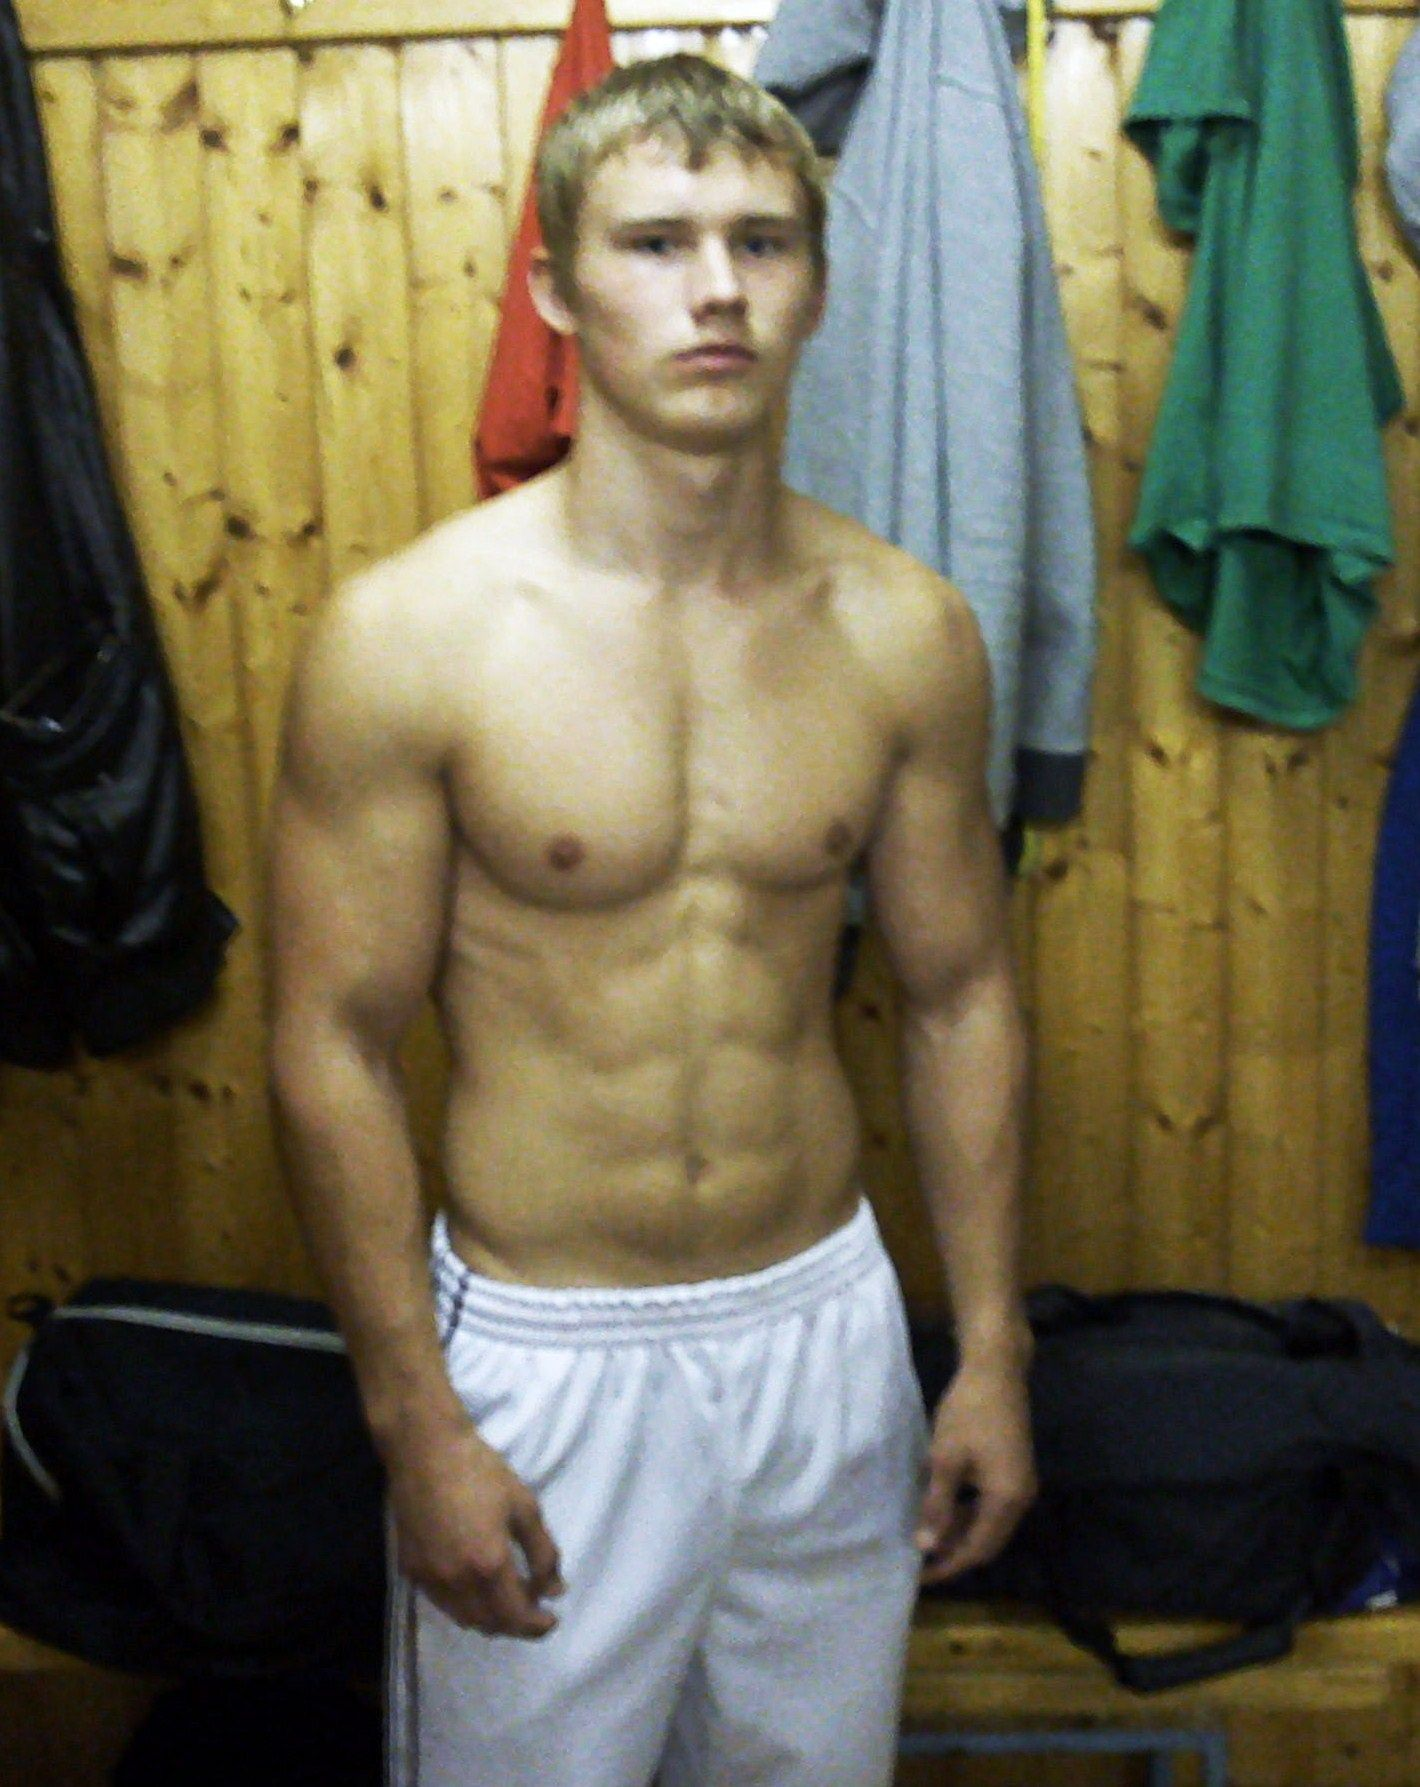 76kg Male With 8 Body Fat